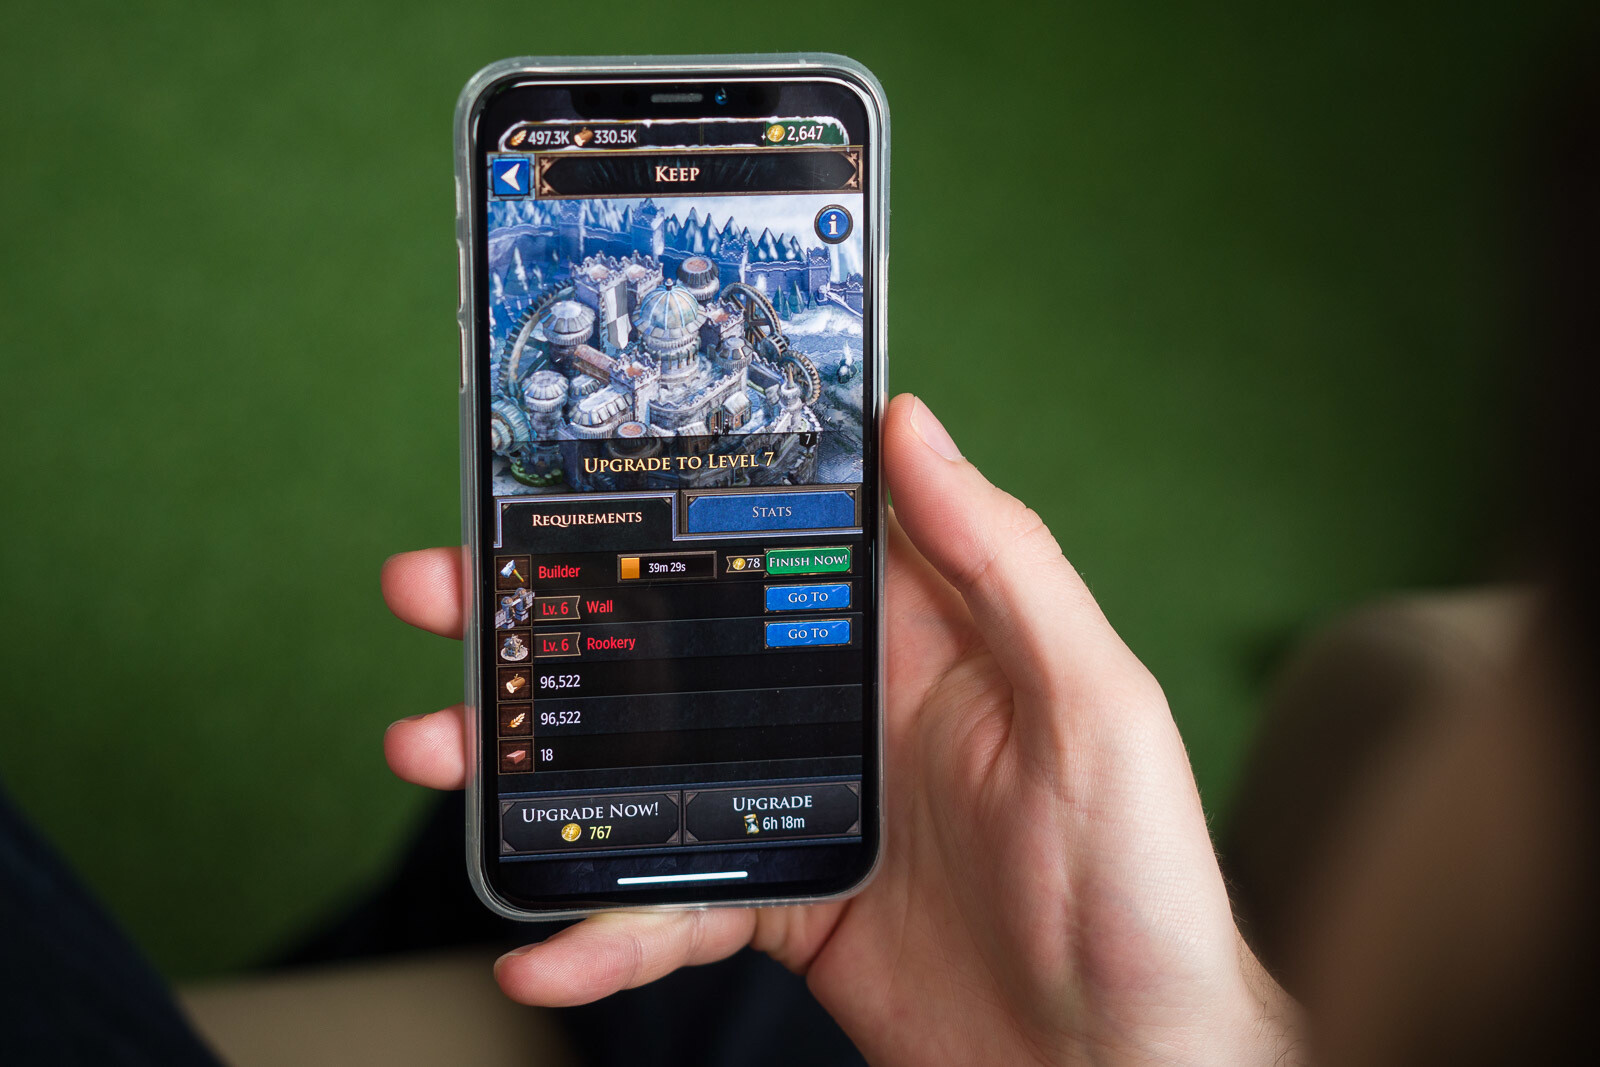 Game of Thrones: Conquest is a mobile game as disappointing